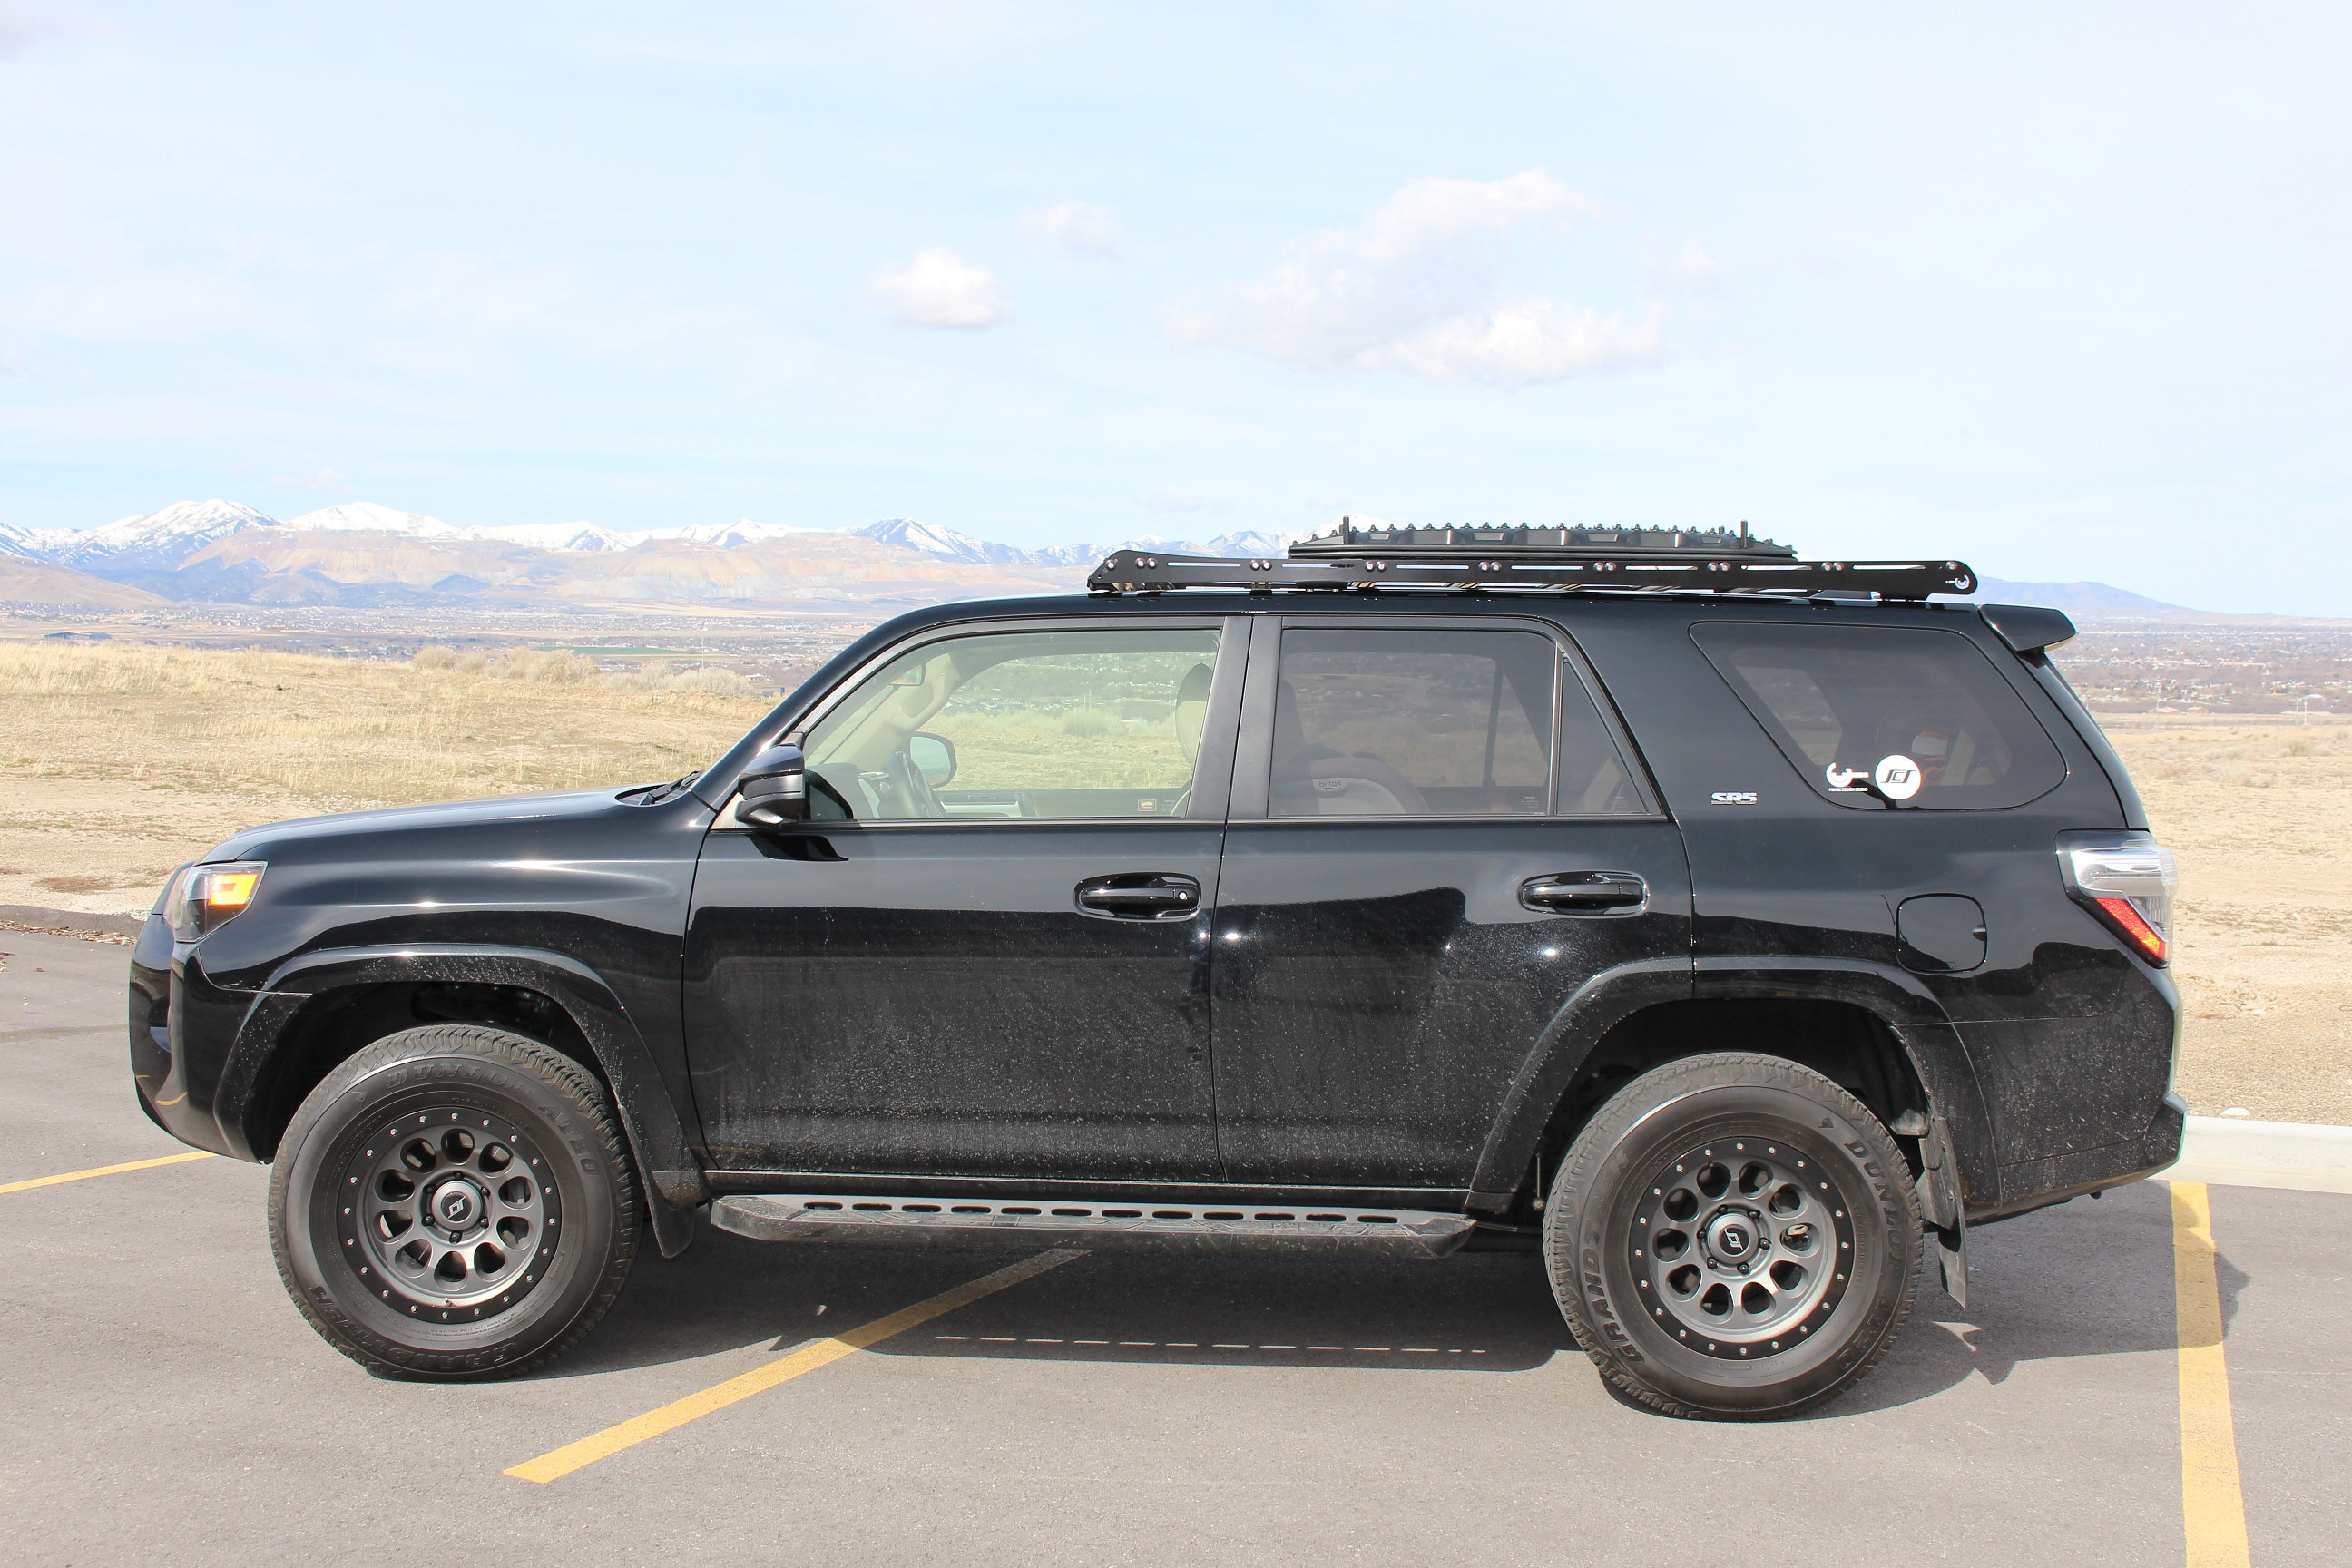 The 4Runner Rooofrac Full Is A Modular, Adjustable, And Completely Bolt  Together 7/8 Length Roof Rack For 2010 2018 Toyota 4Runner.